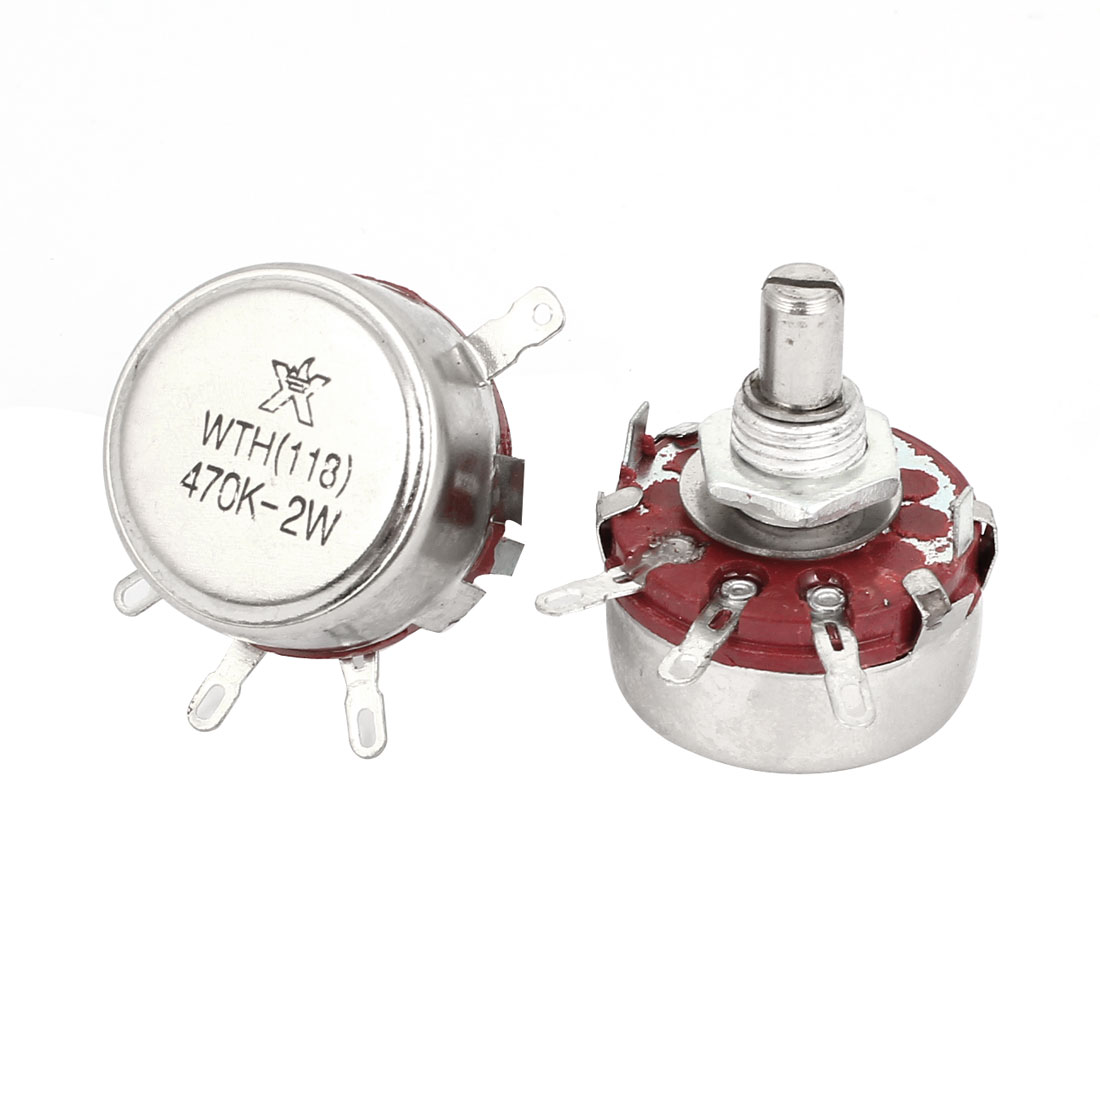 2pcs 470K ohm 2W Watt Single Turn Carbon Composition Rotary Potentiometer WTH118